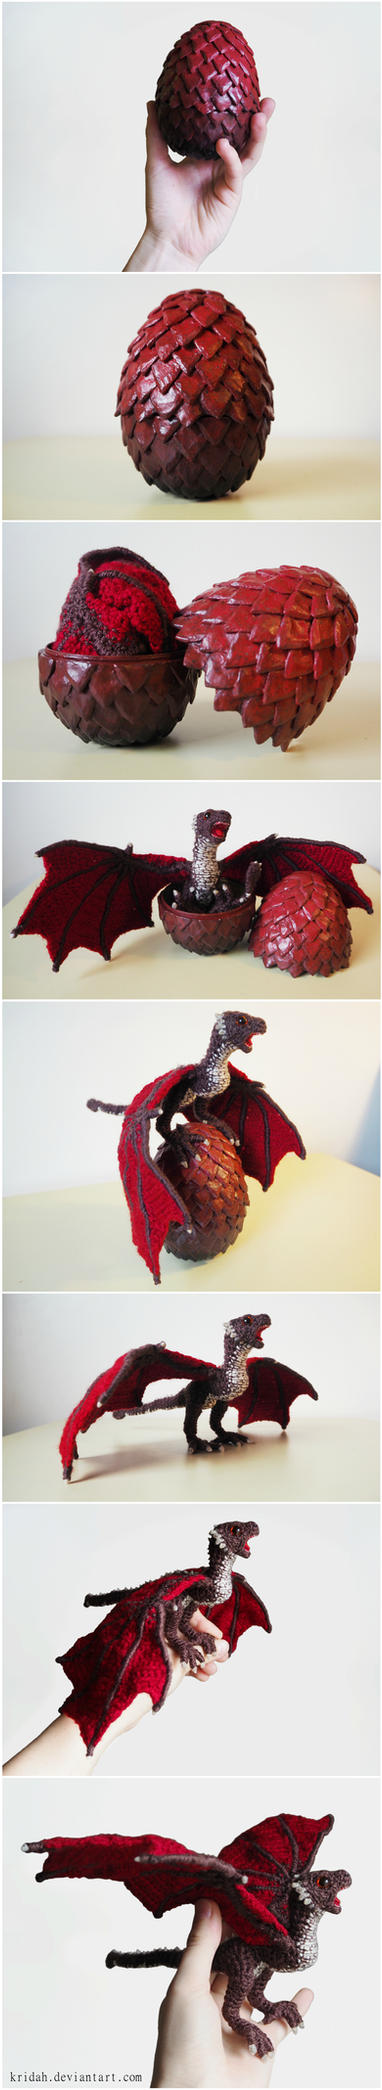 Baby Dragon and Egg by Kridah